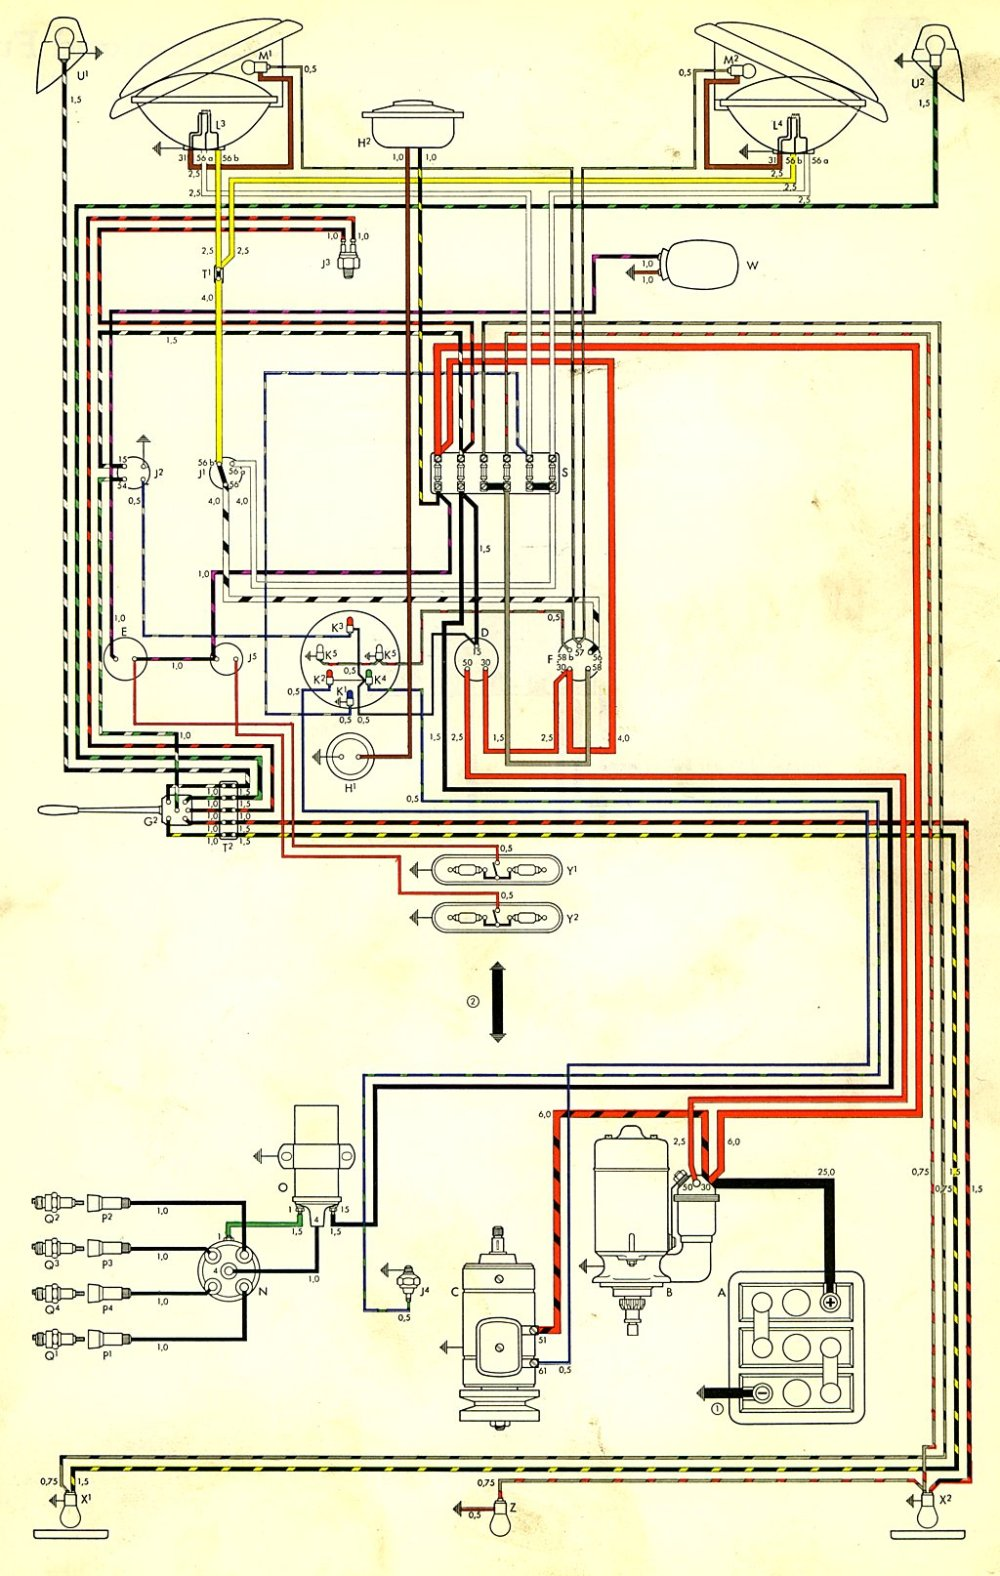 medium resolution of 1968 vw bus wiring diagram wiring diagram technic